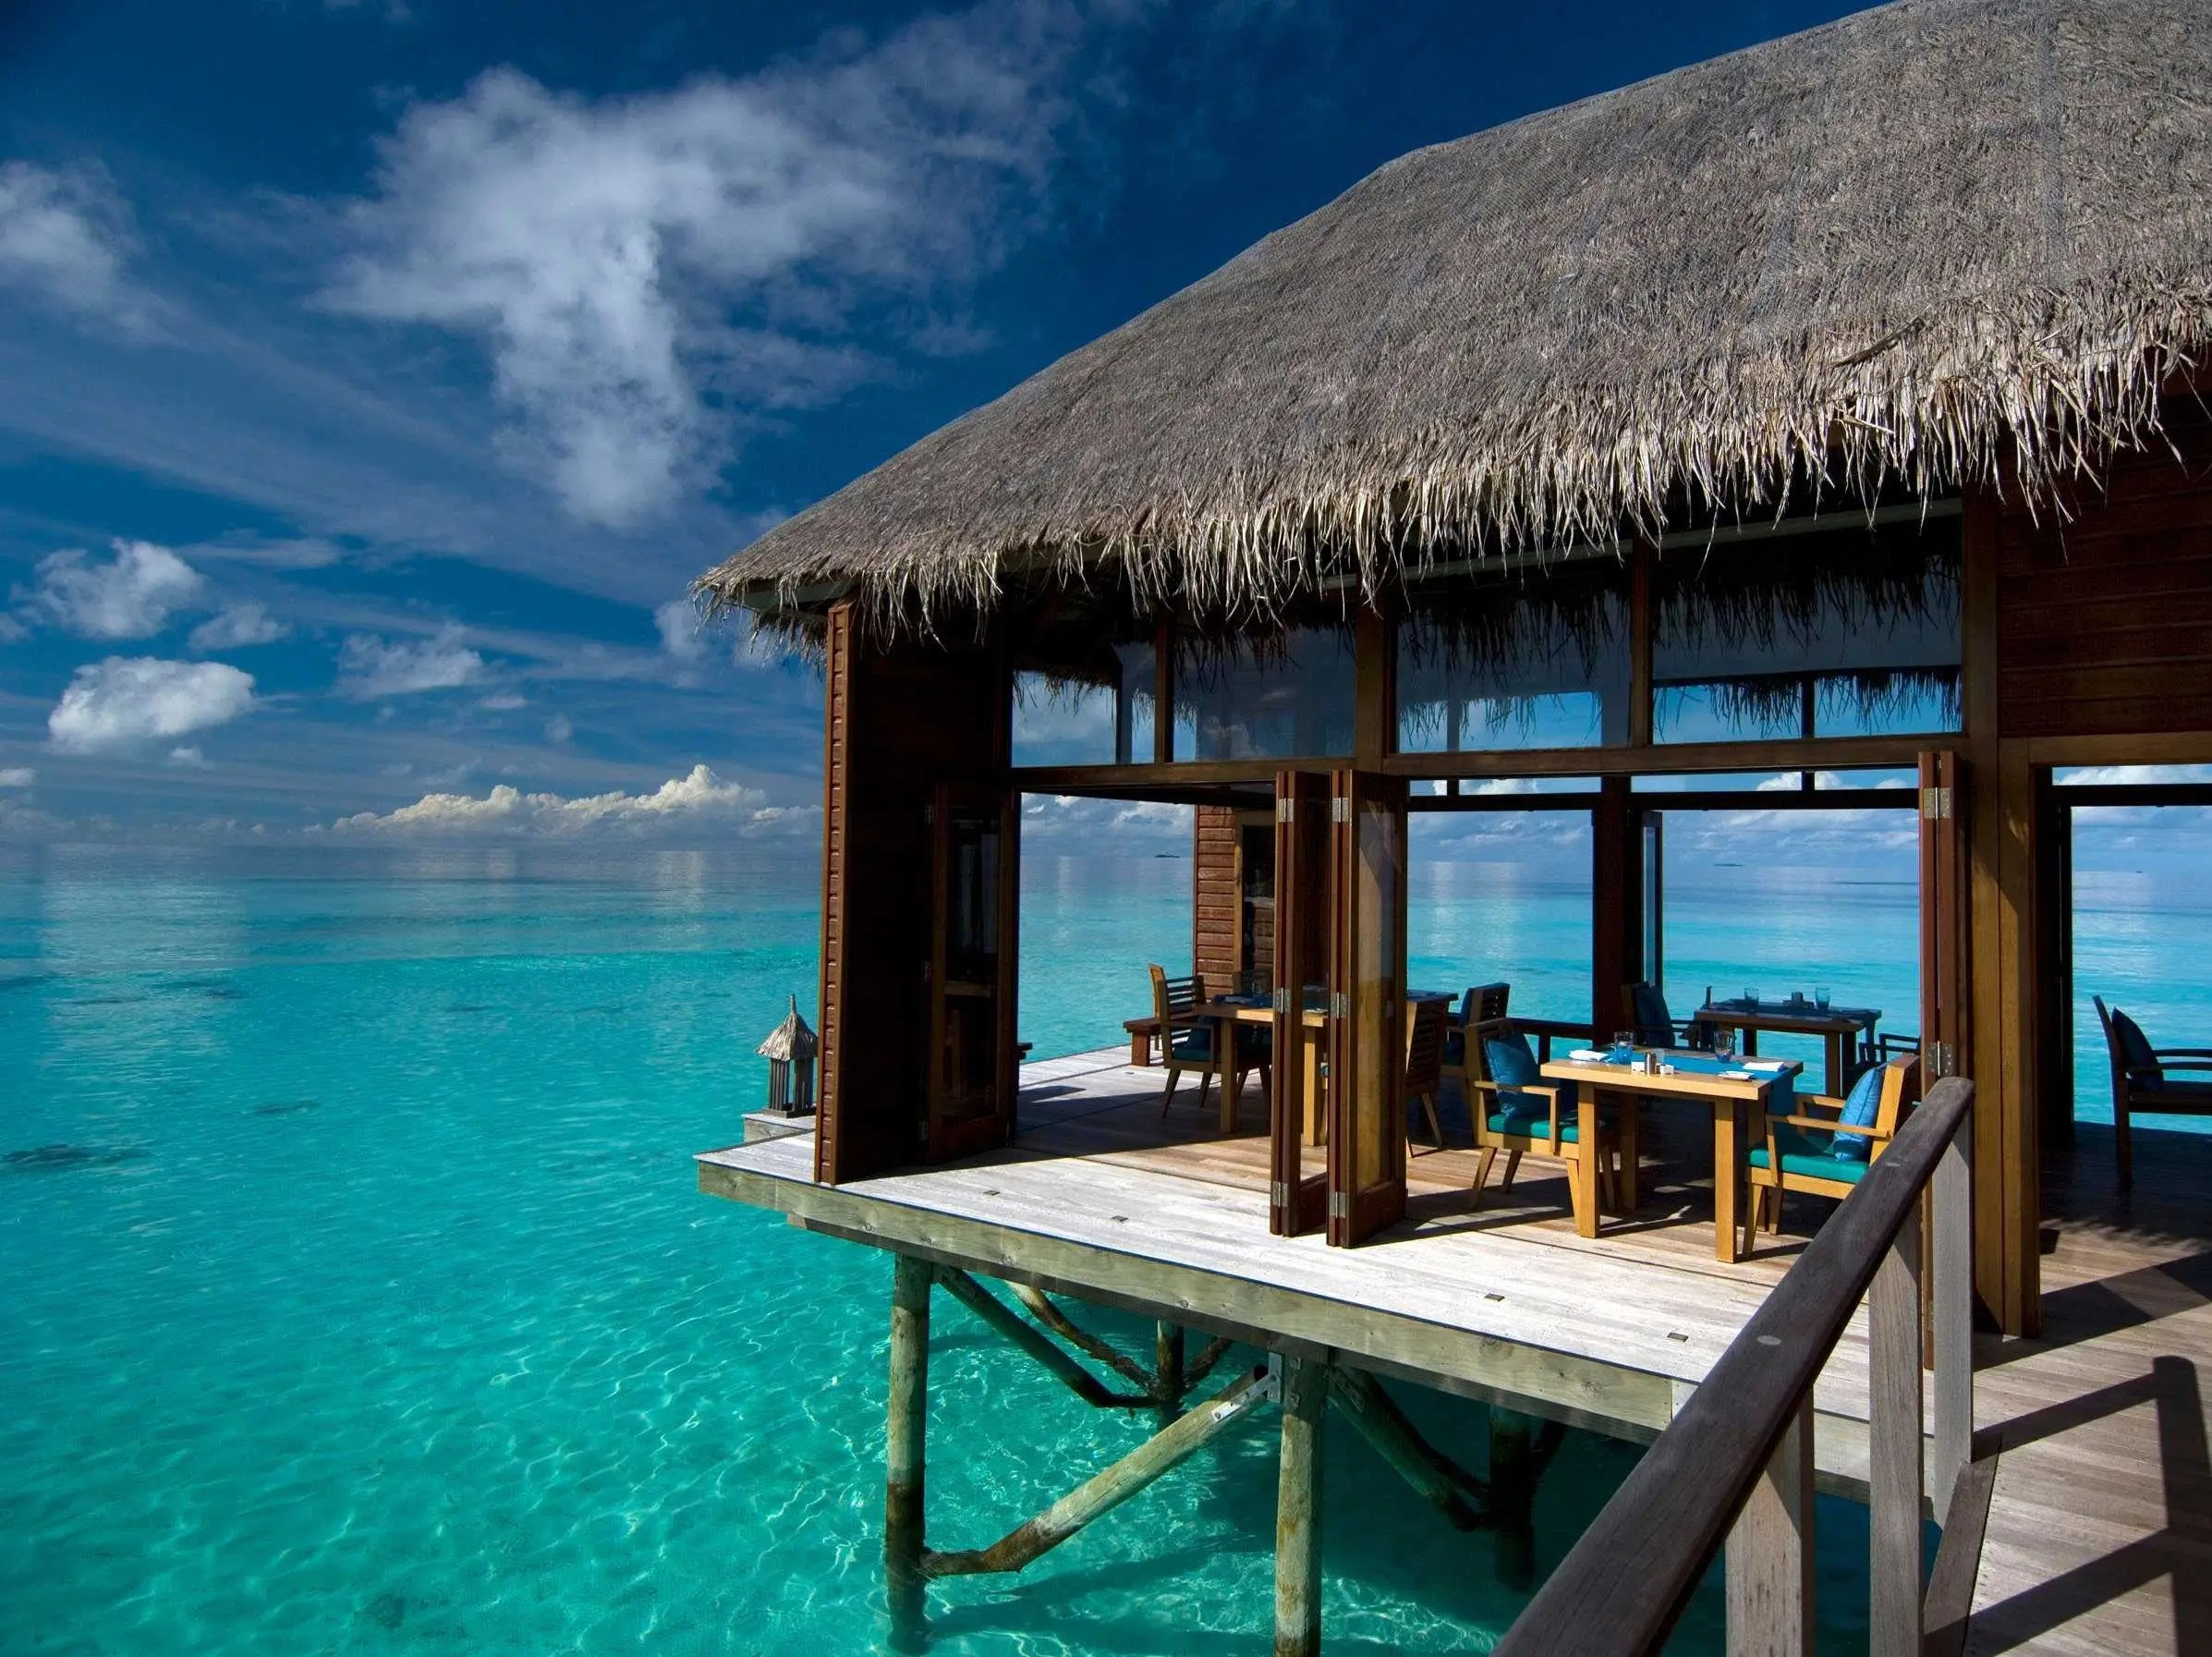 Stay in a luxury hut over the clear aqua waters of the Maldive Islands.